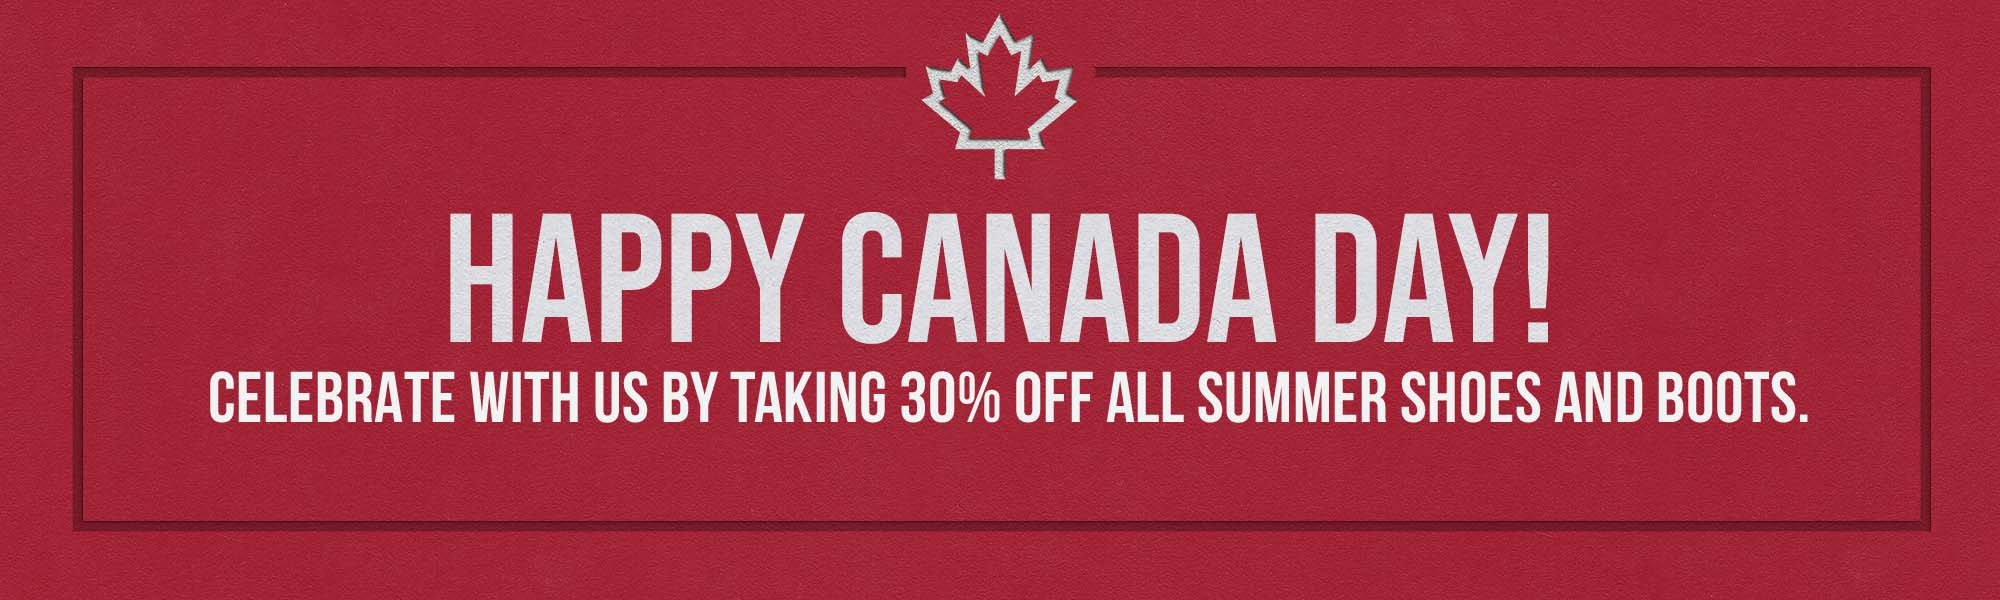 Canada Day Sale: 30% off